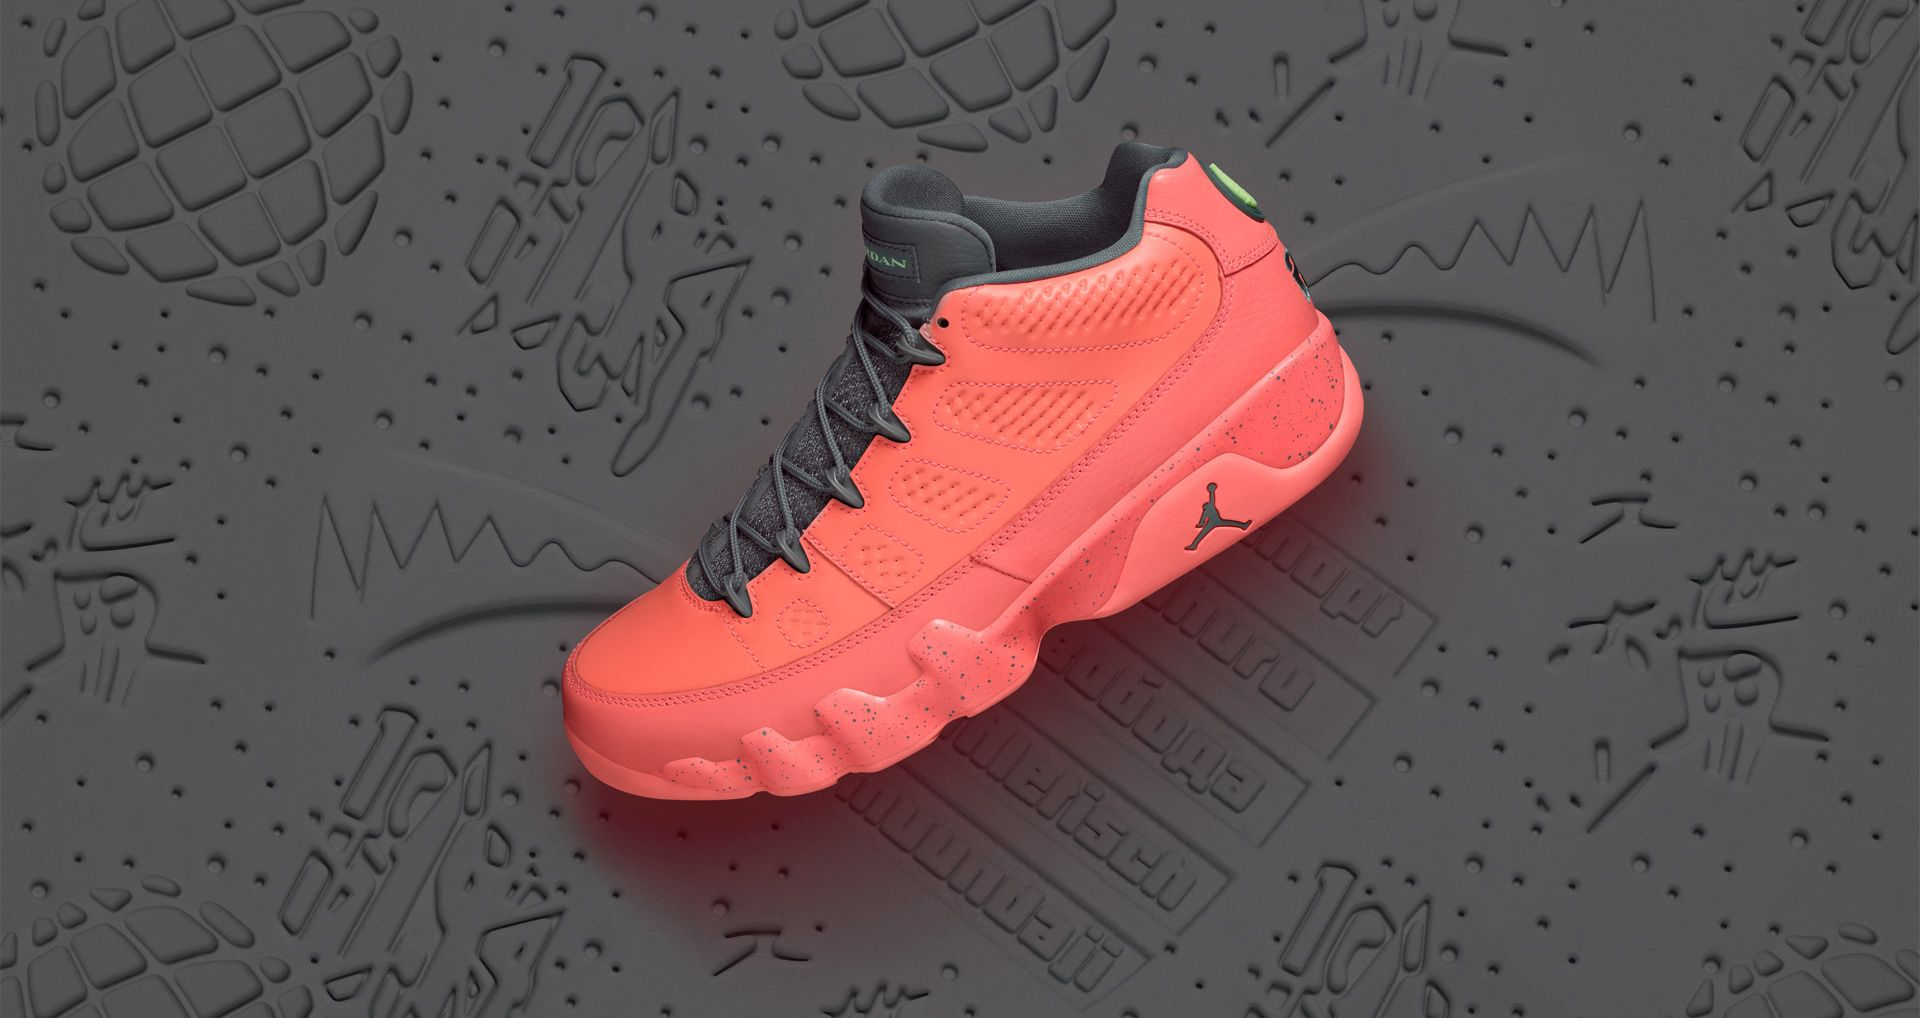 san francisco bf0a3 00dda Air Jordan 9 Retro Low 'Bright Mango' Release Date. Nike⁠+ SNKRS